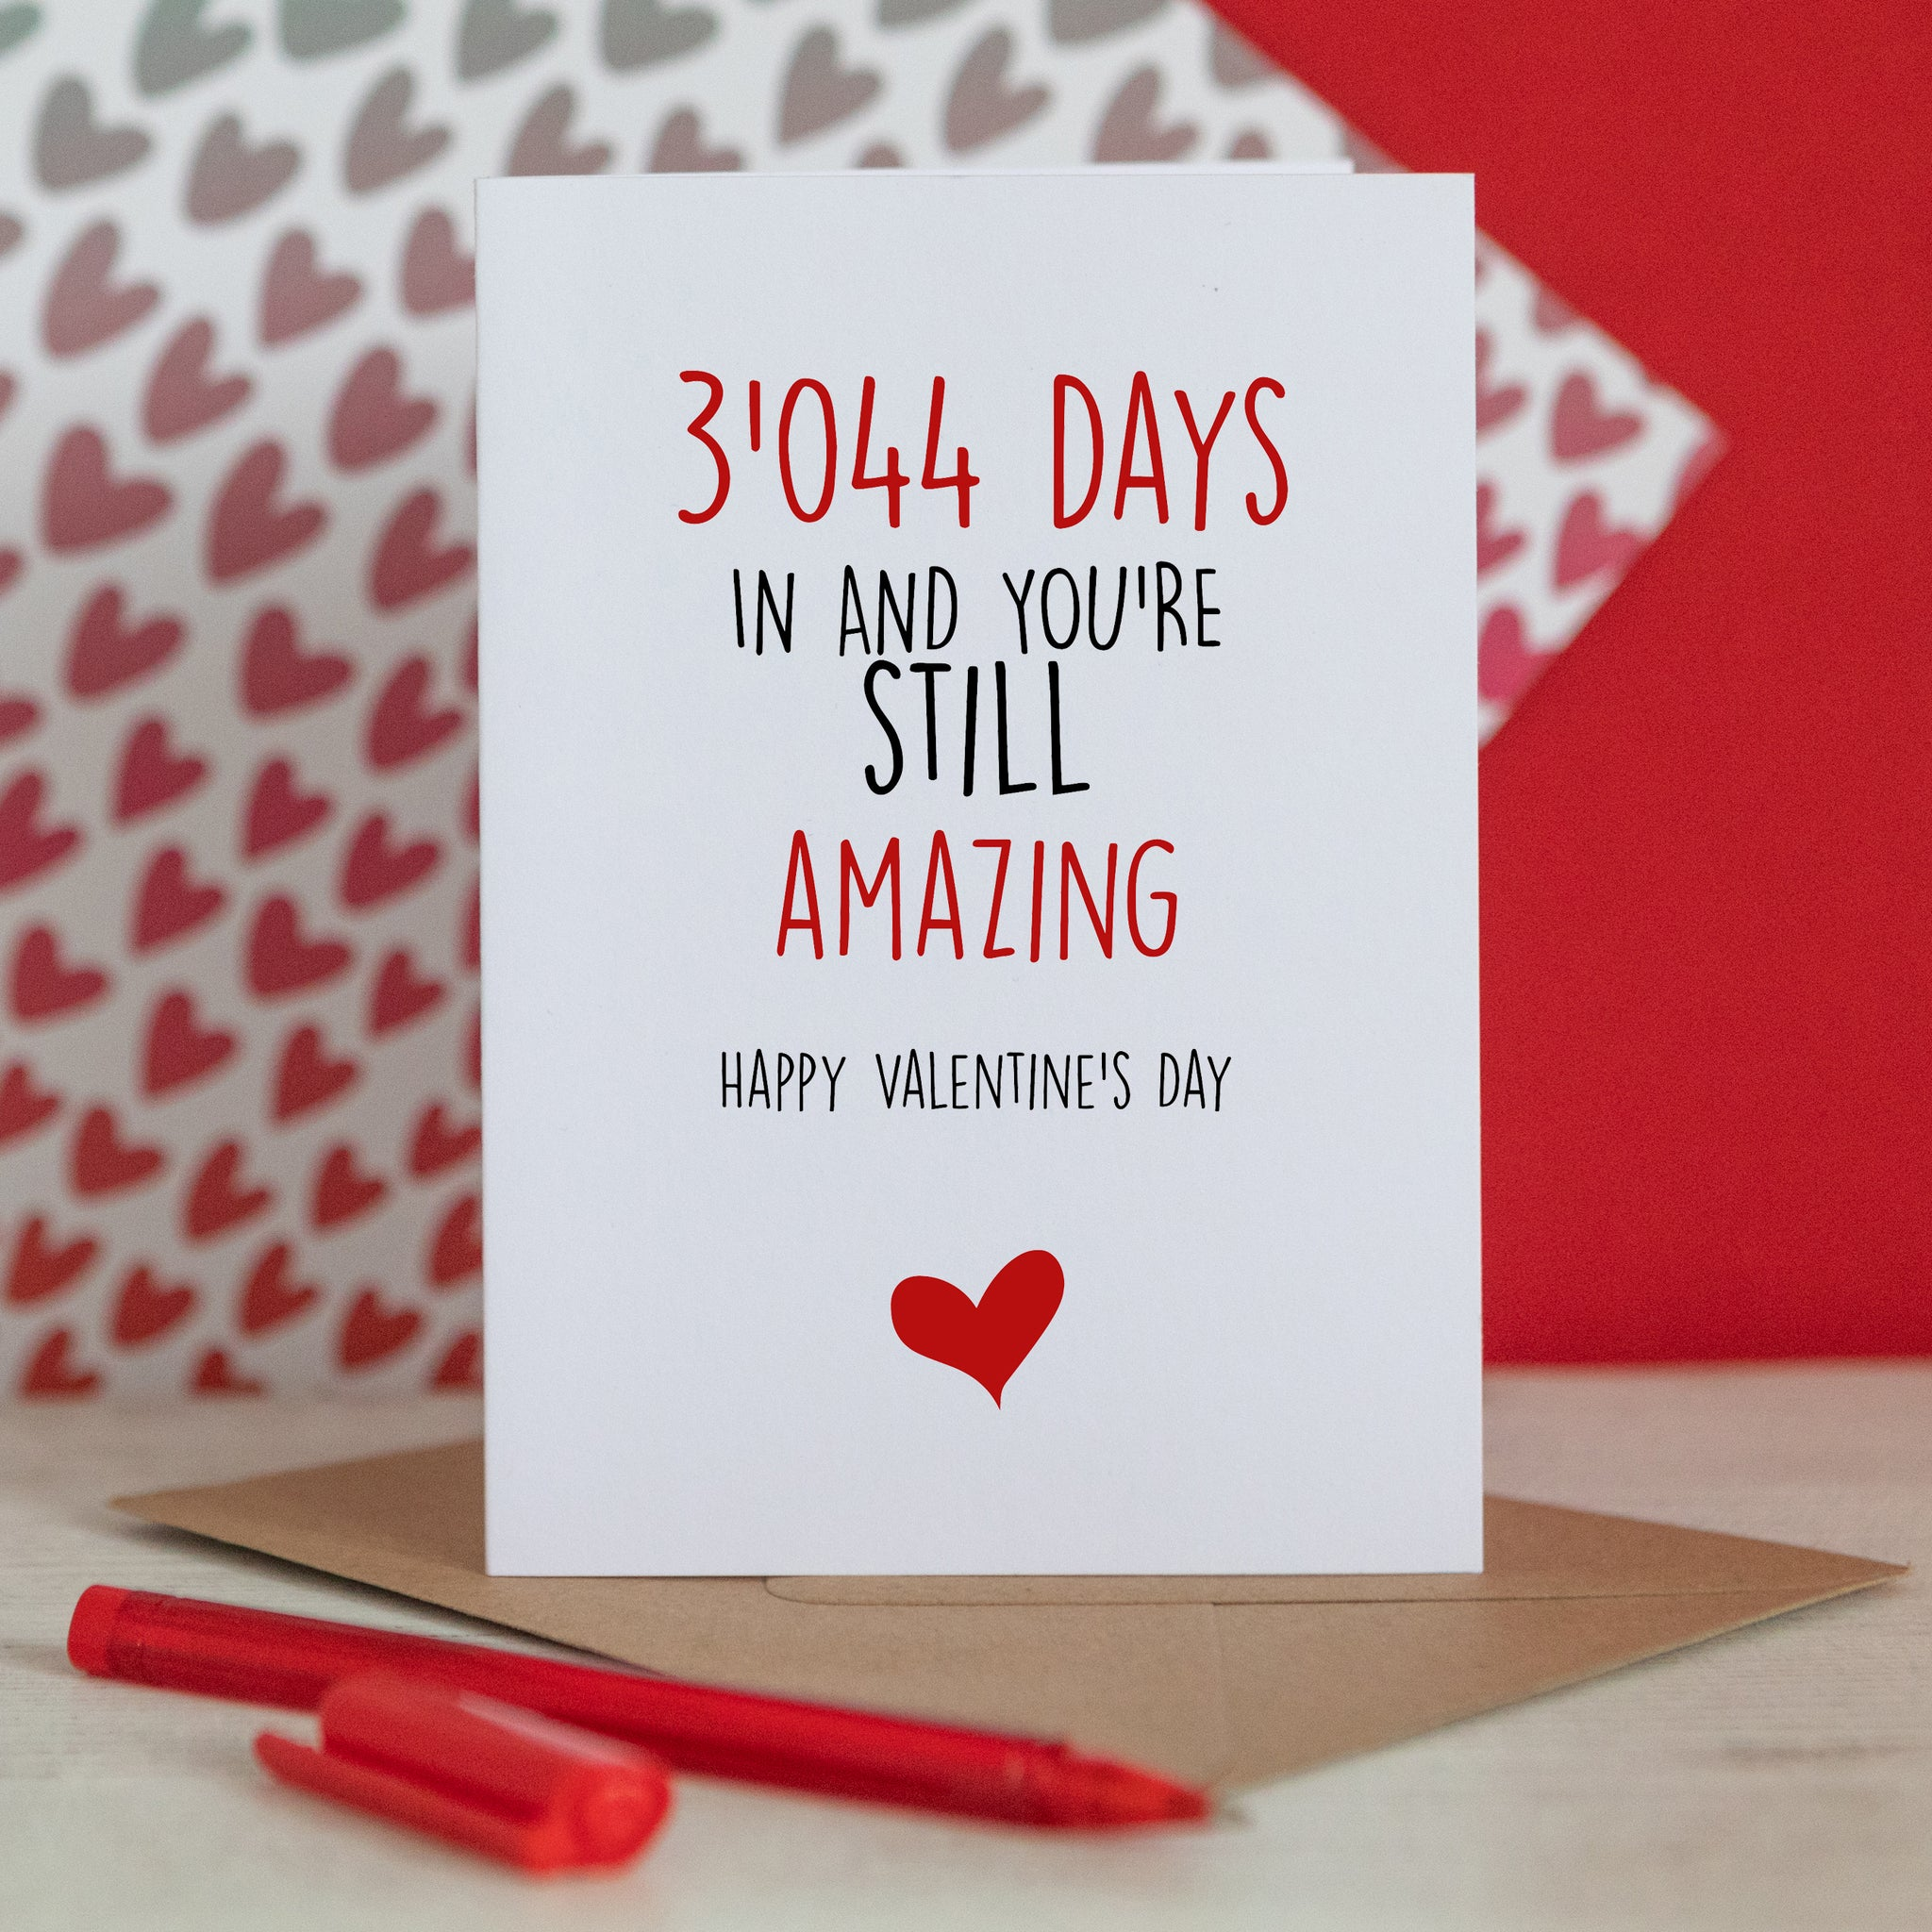 Number of Days Valentine's Card